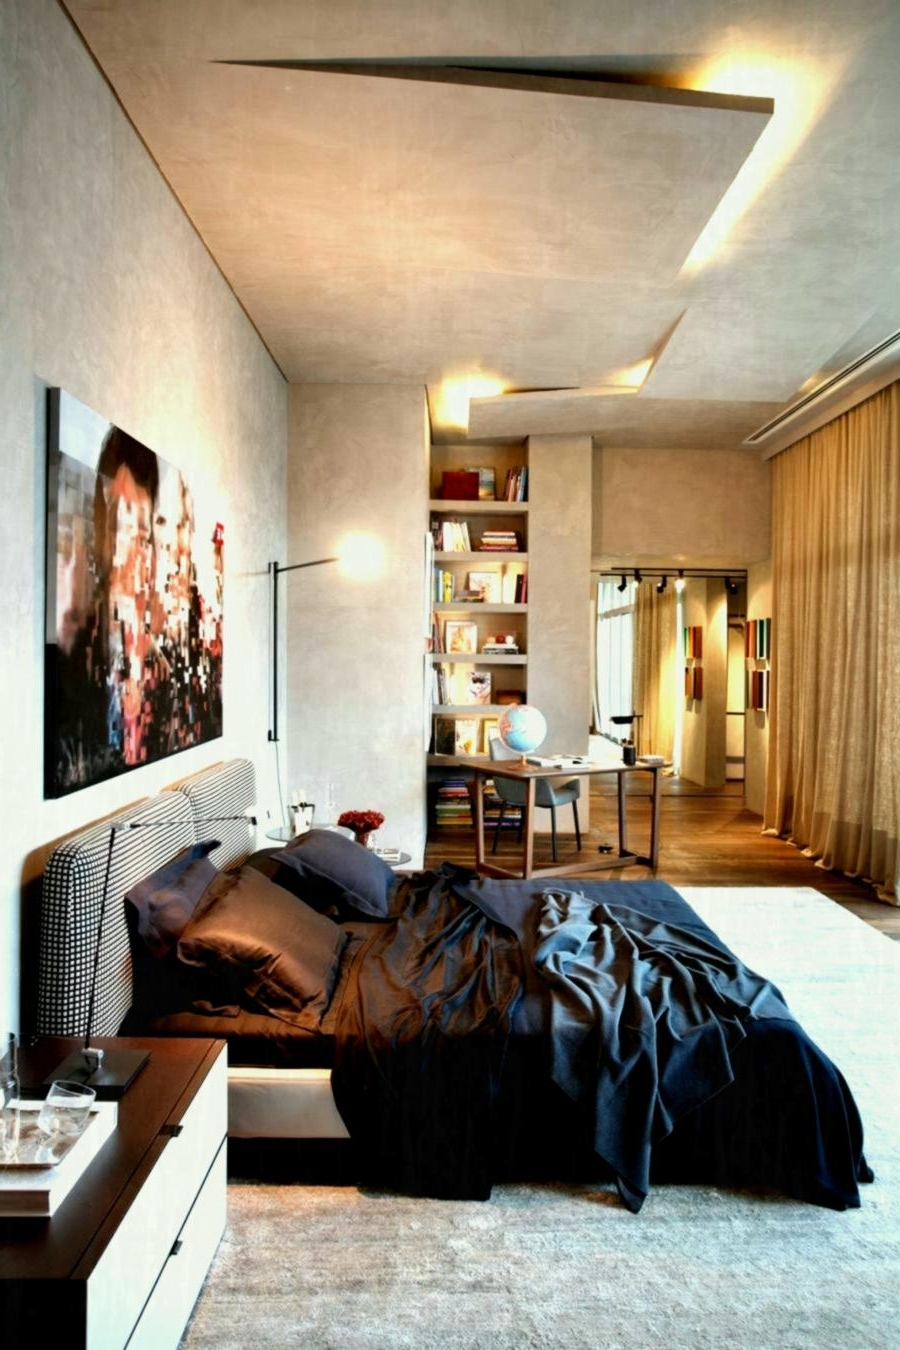 Living Room Wall Art For Bachelor Pad Bedroom Ideas – Bedroom Pertaining To Famous Bachelor Pad Wall Art (View 8 of 15)